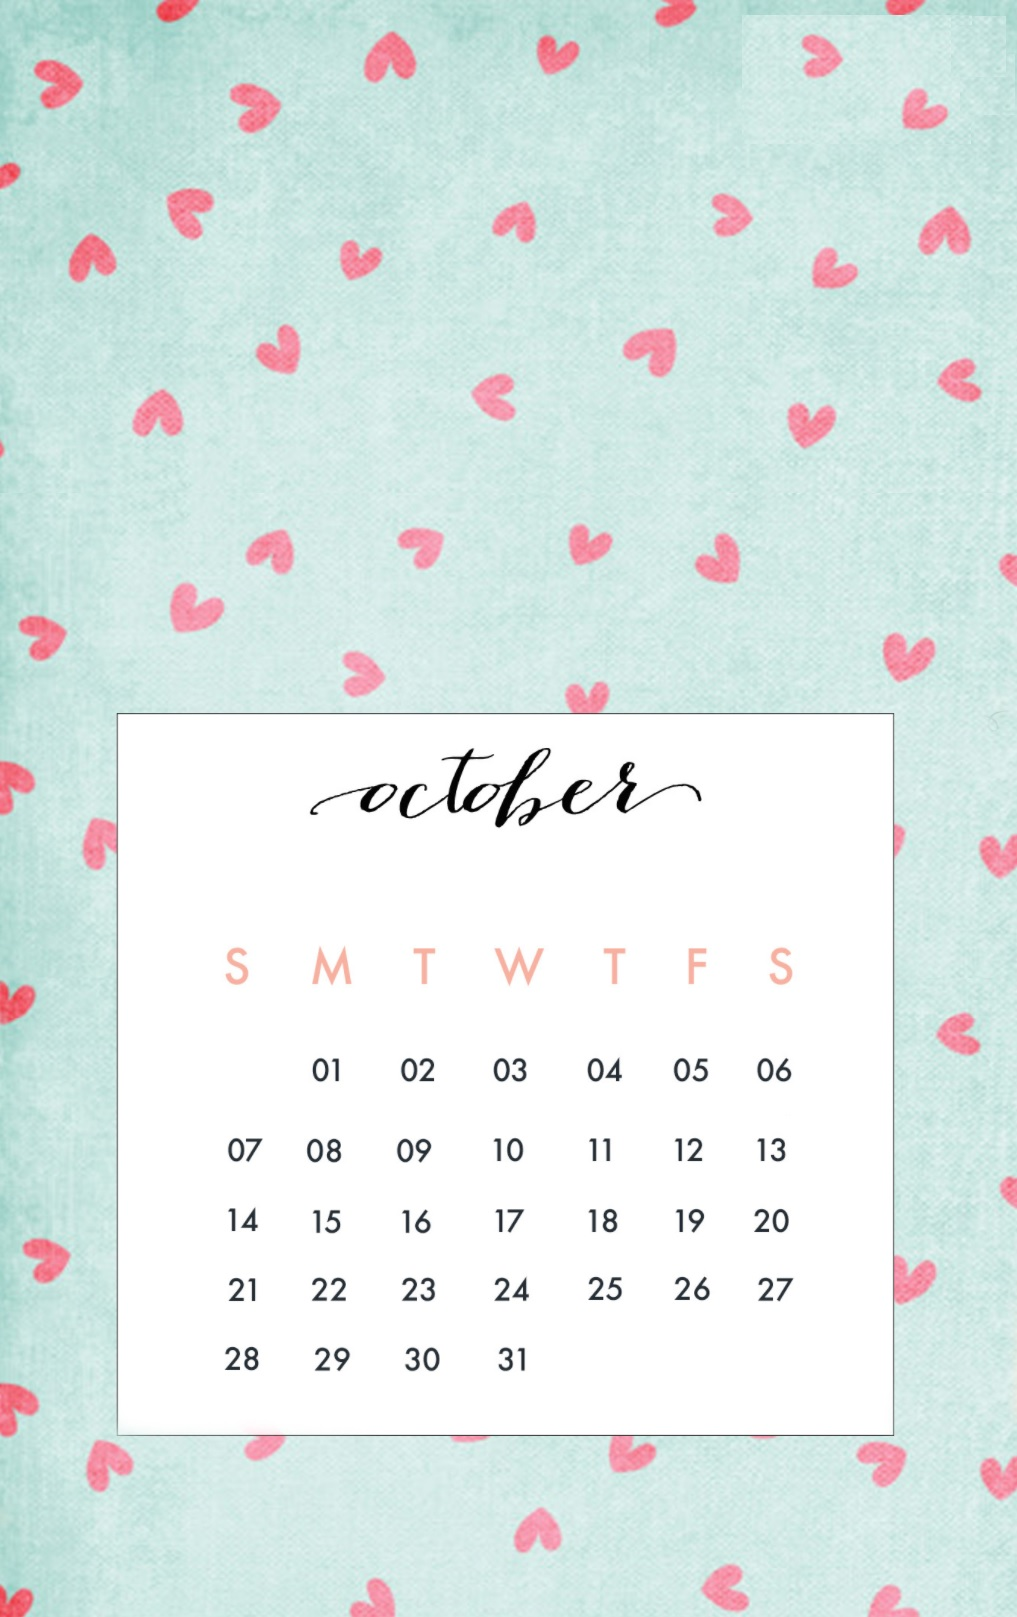 October 2018 iPhone Calendar Wallpapers